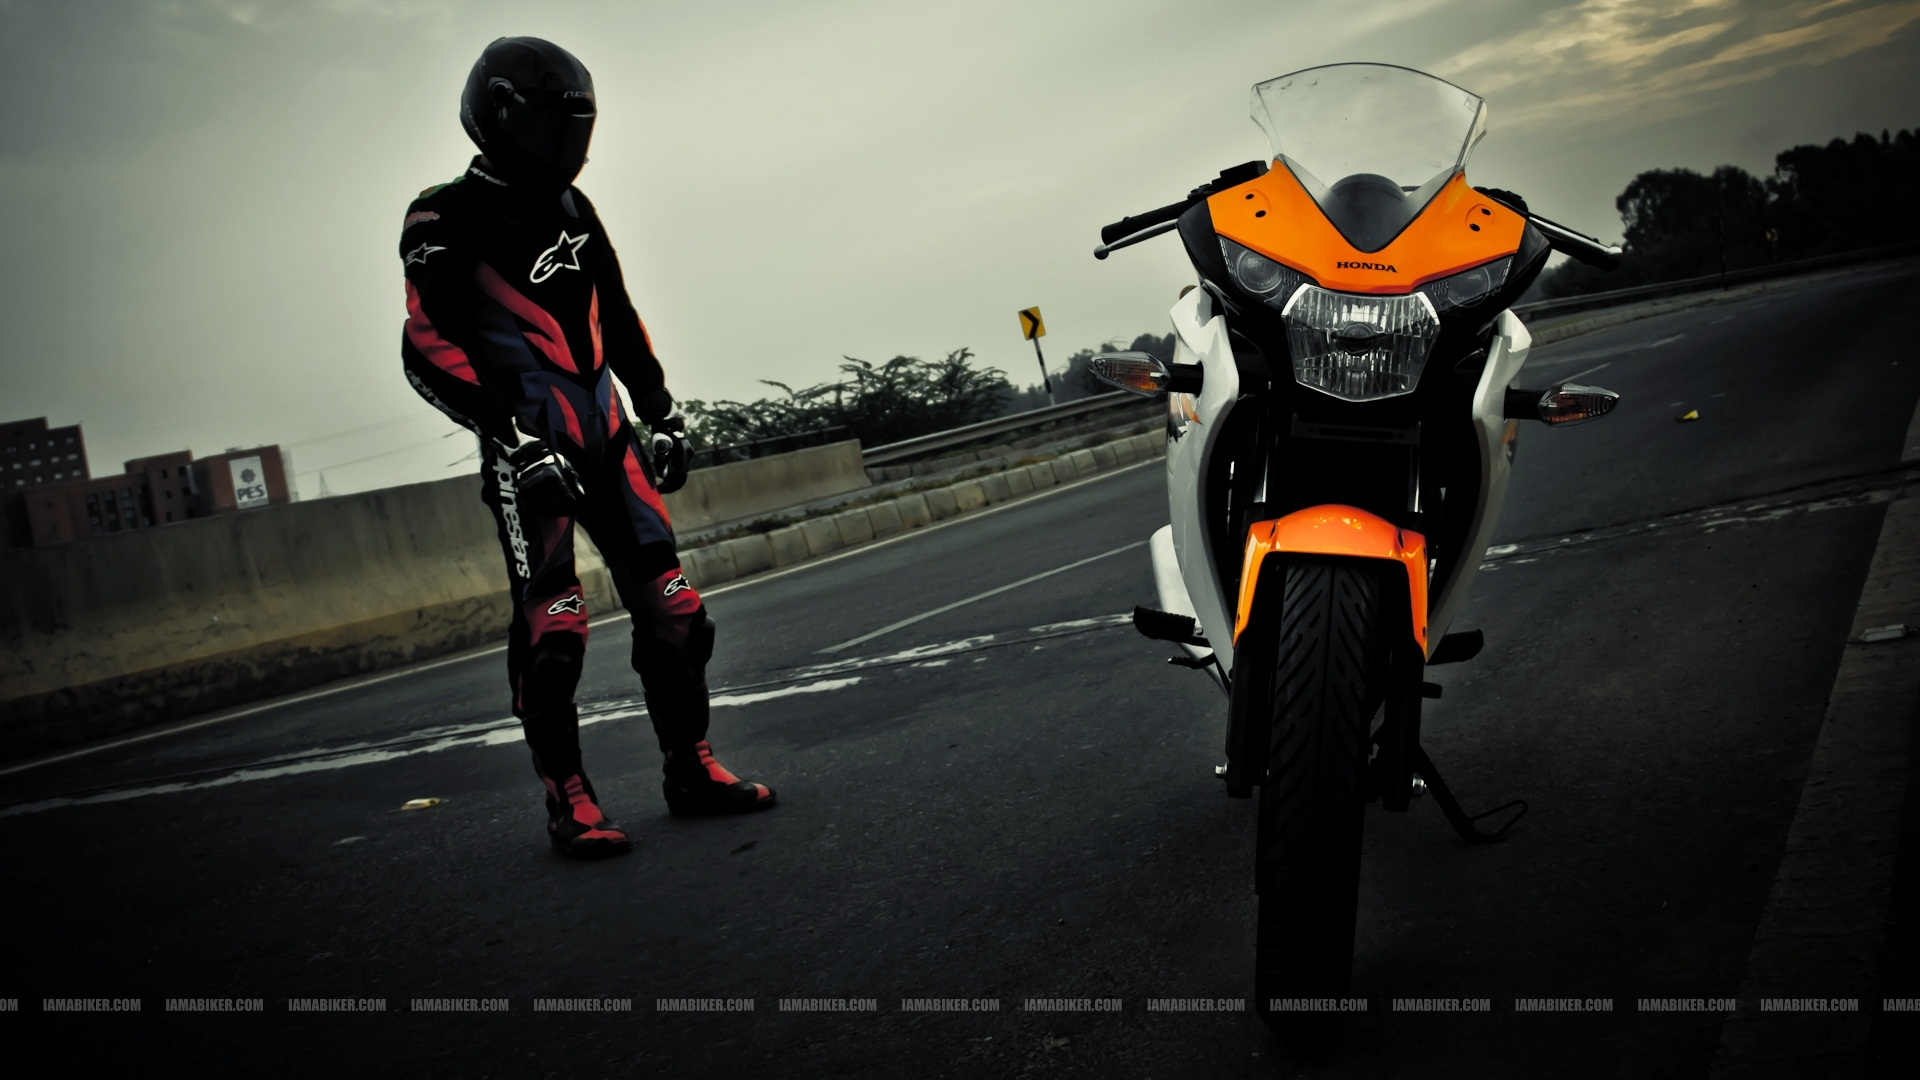 Honda Cbr 150r Hd Wallpapers 150cc Repsoledition For Those Fans We Have The Of Your Favorite To Download These Just Click On Images Open